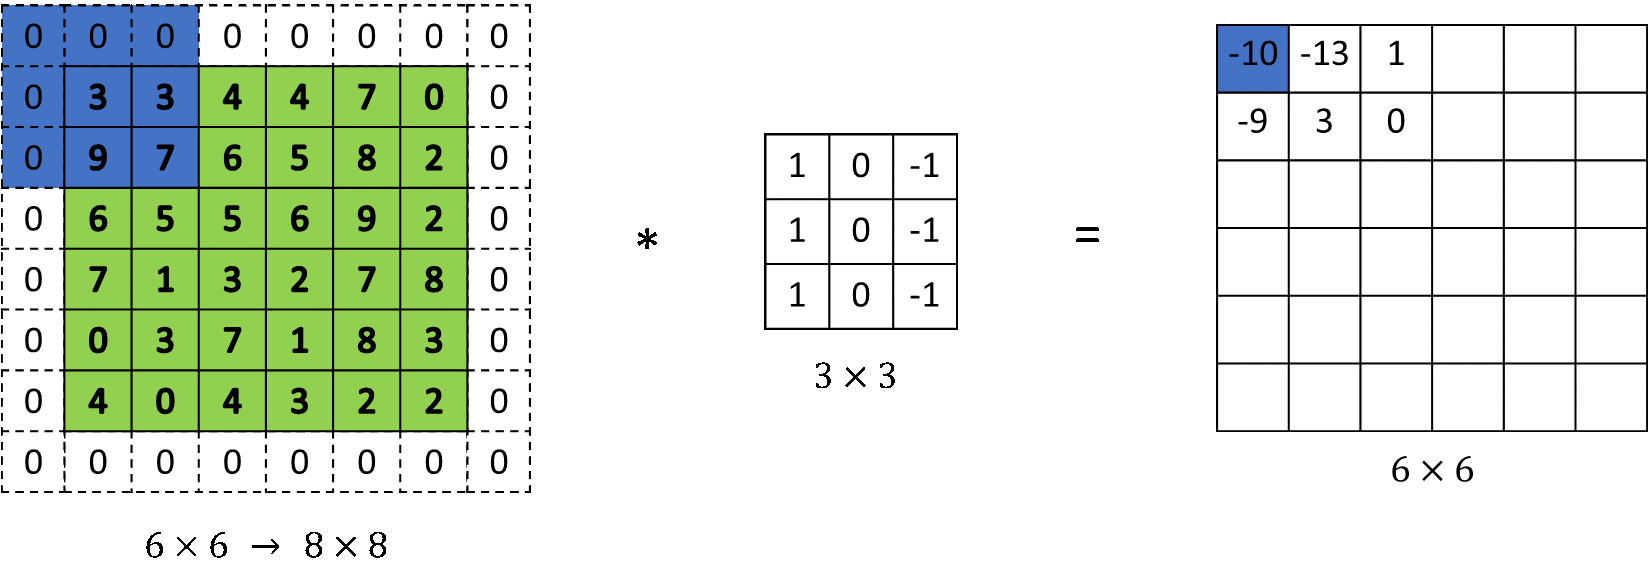 Applying padding of 1 on a matrix - convolutional neural network